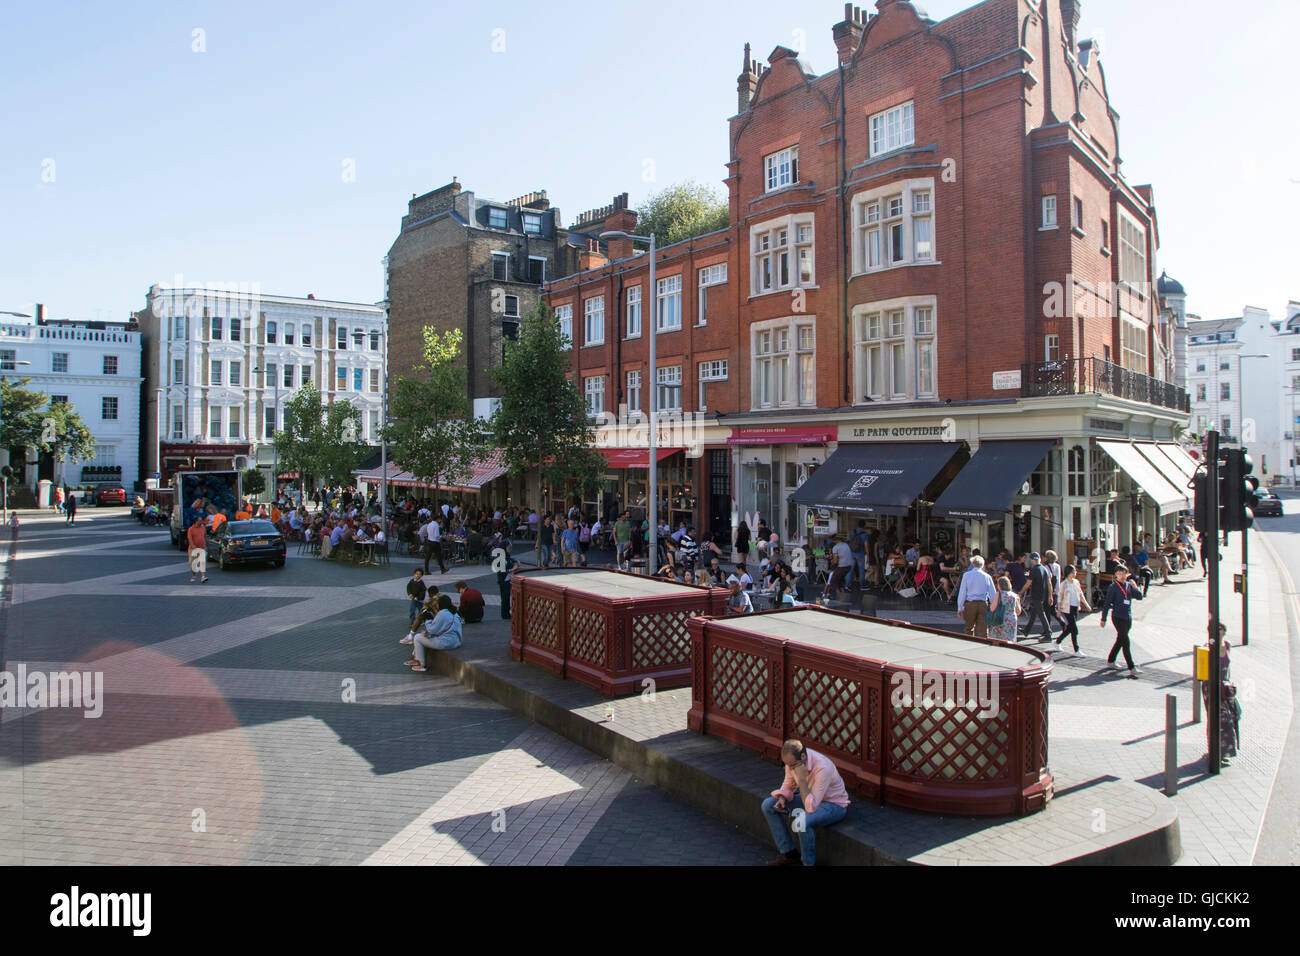 Exhibition Road in the Royal Borough of Kensington and Chelsea and the City of Westminster Greater Central London - Stock Image